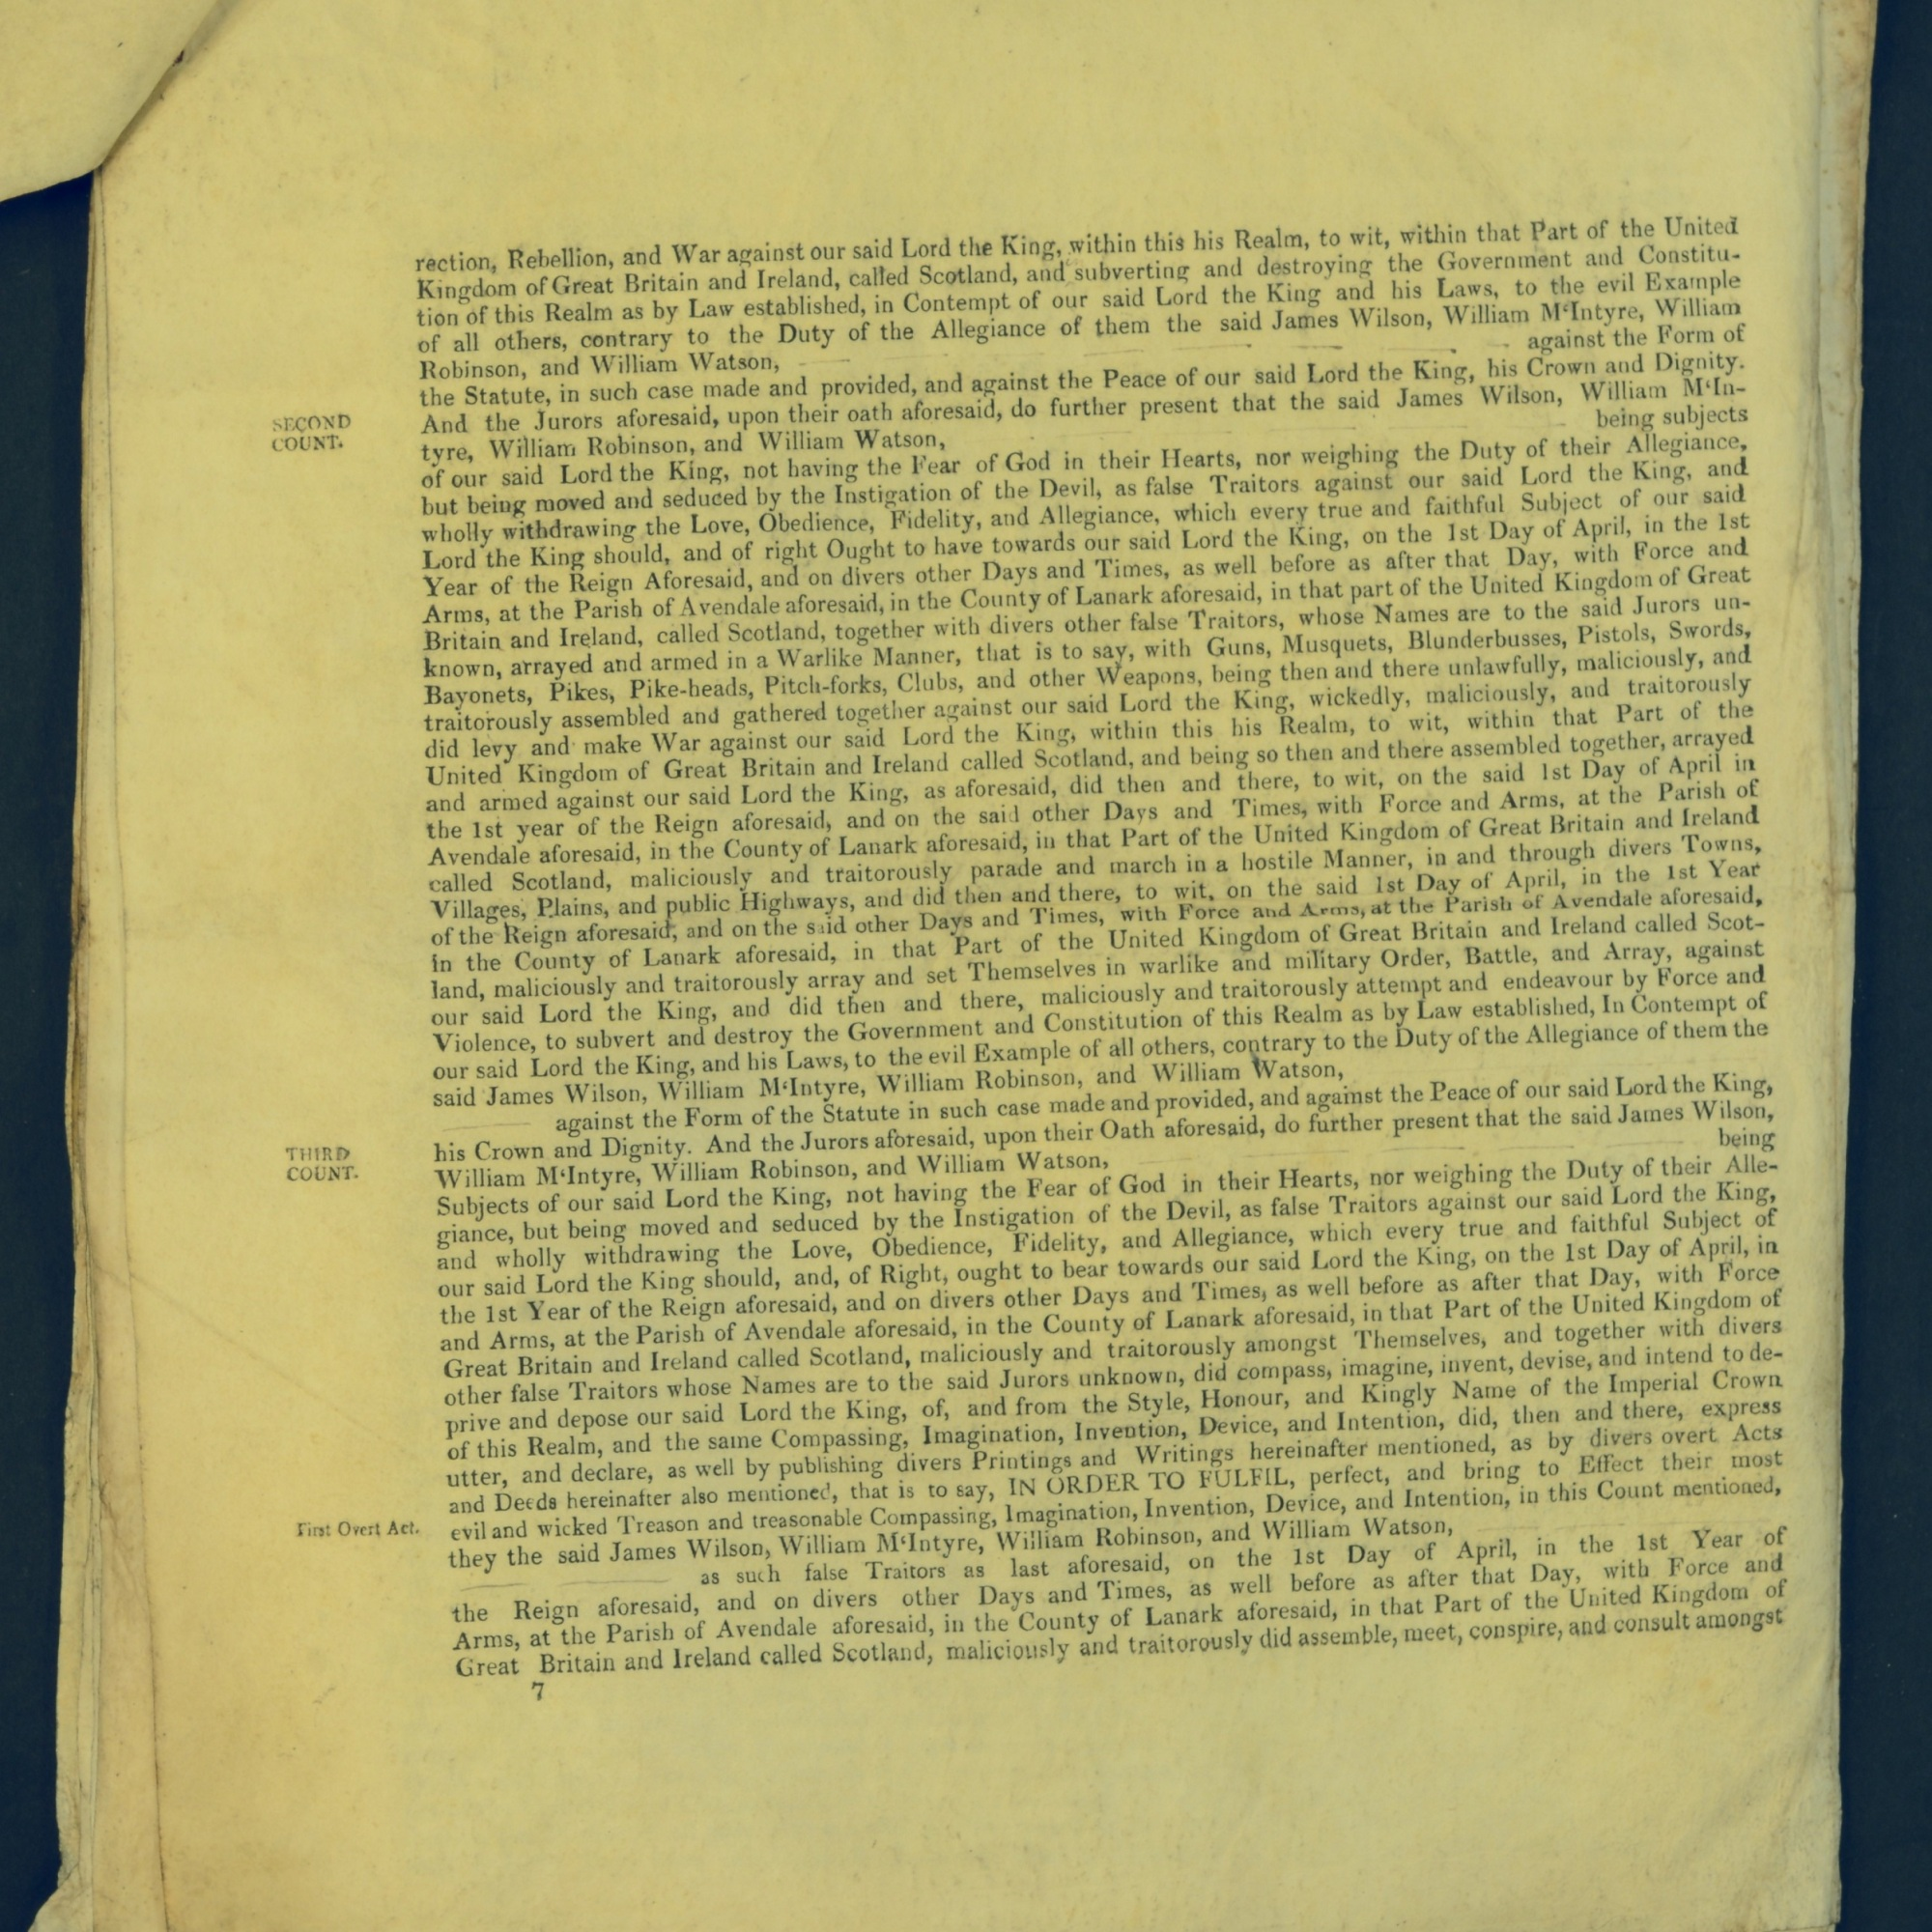 Treason Trials for the County of Lanark, the Strathaven Case. True bills found against four men, James Wilson, William McIntyre, William Robinson and William Watson. National Records of Scotland, Crown copyright, JC21/3/4 p7